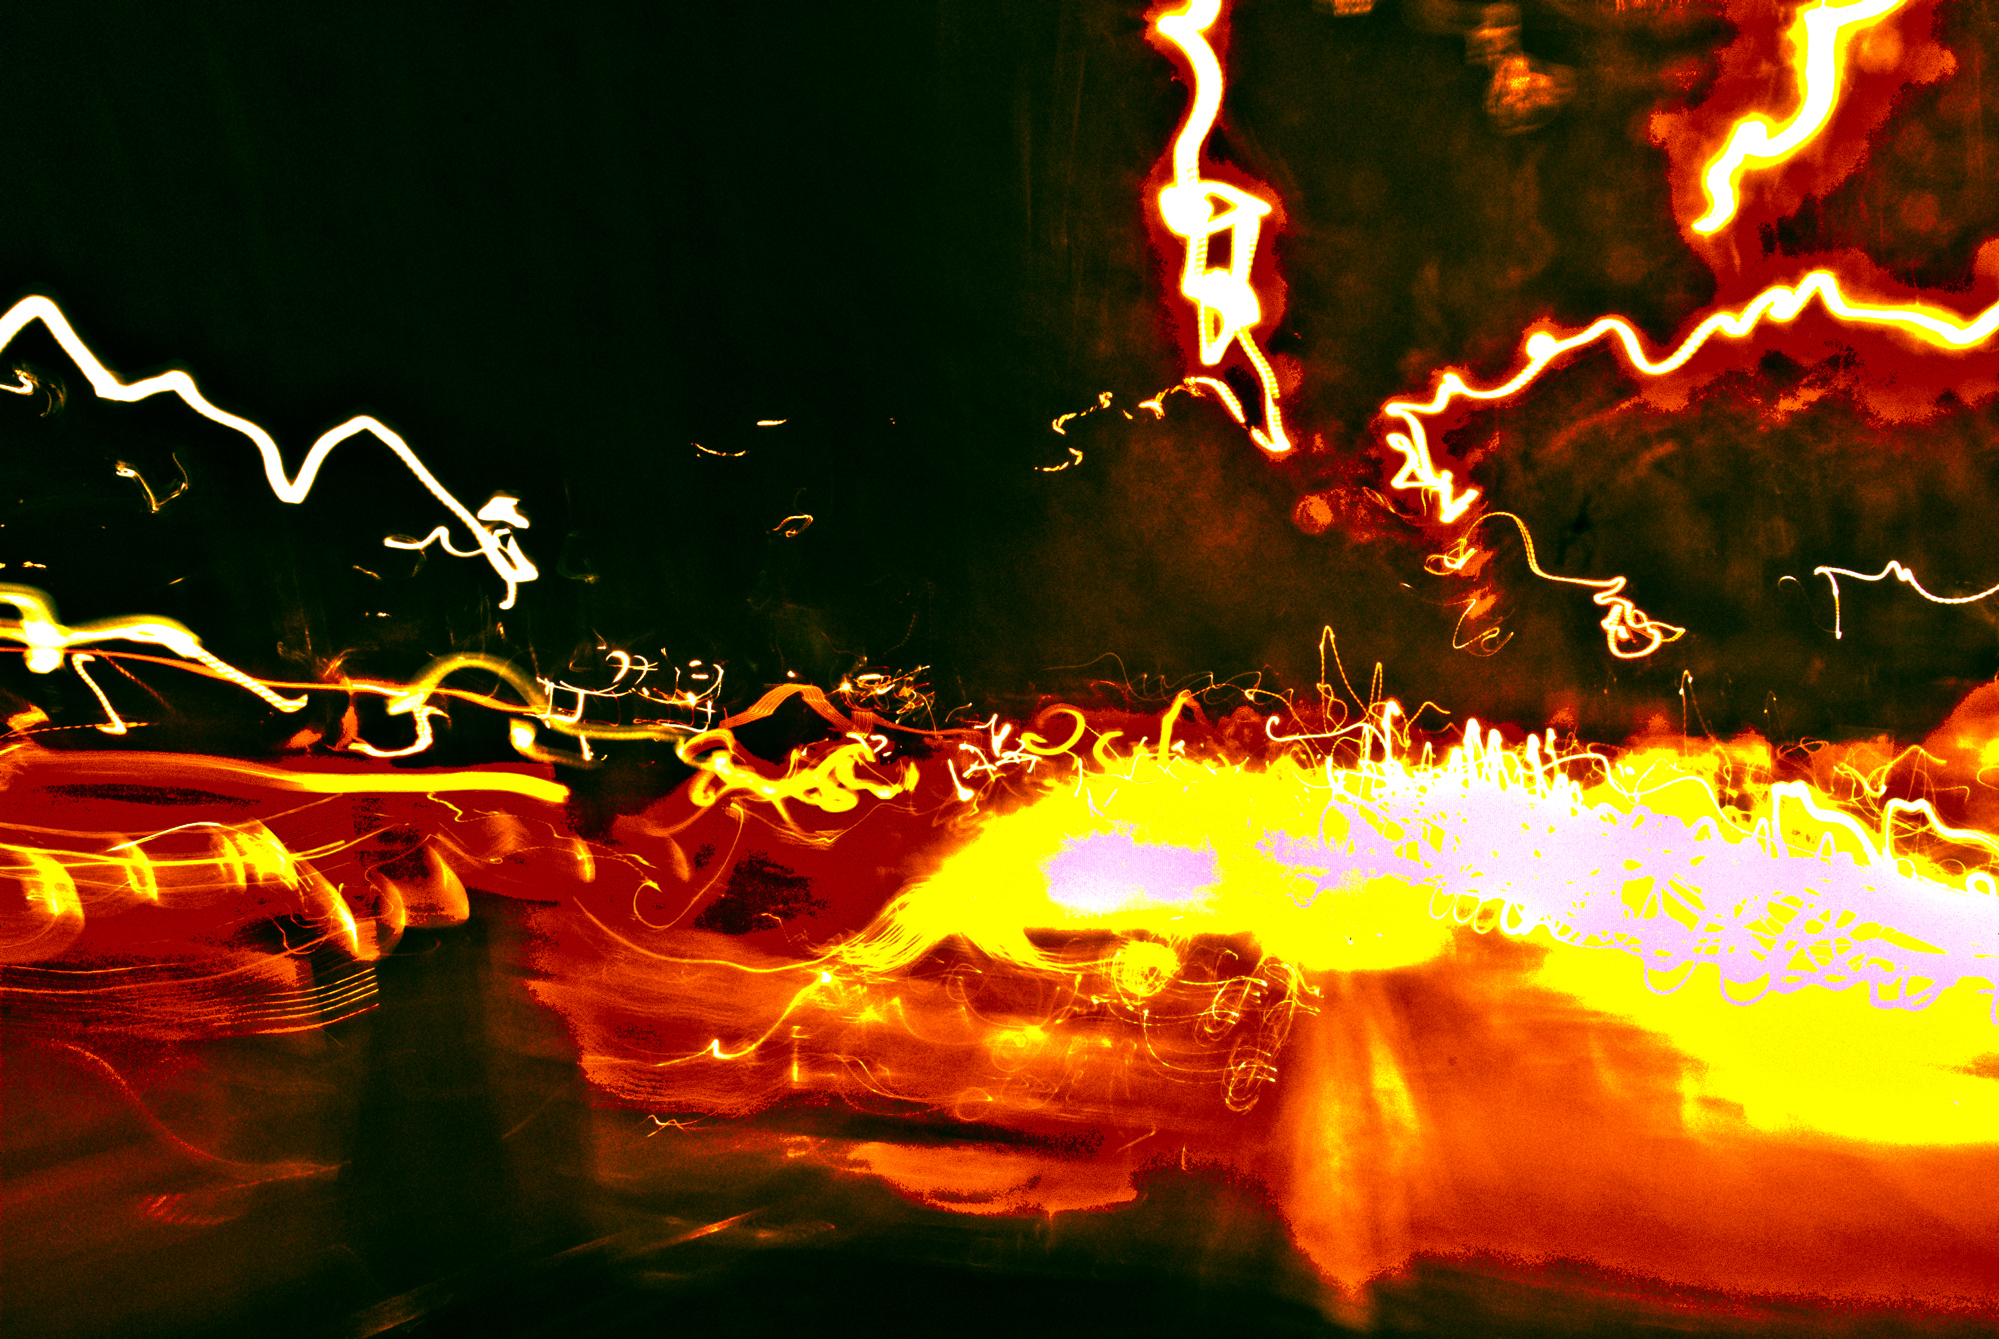 Delhi. Traffic. What else! Edited in Photoshop for contrast and color saturation.